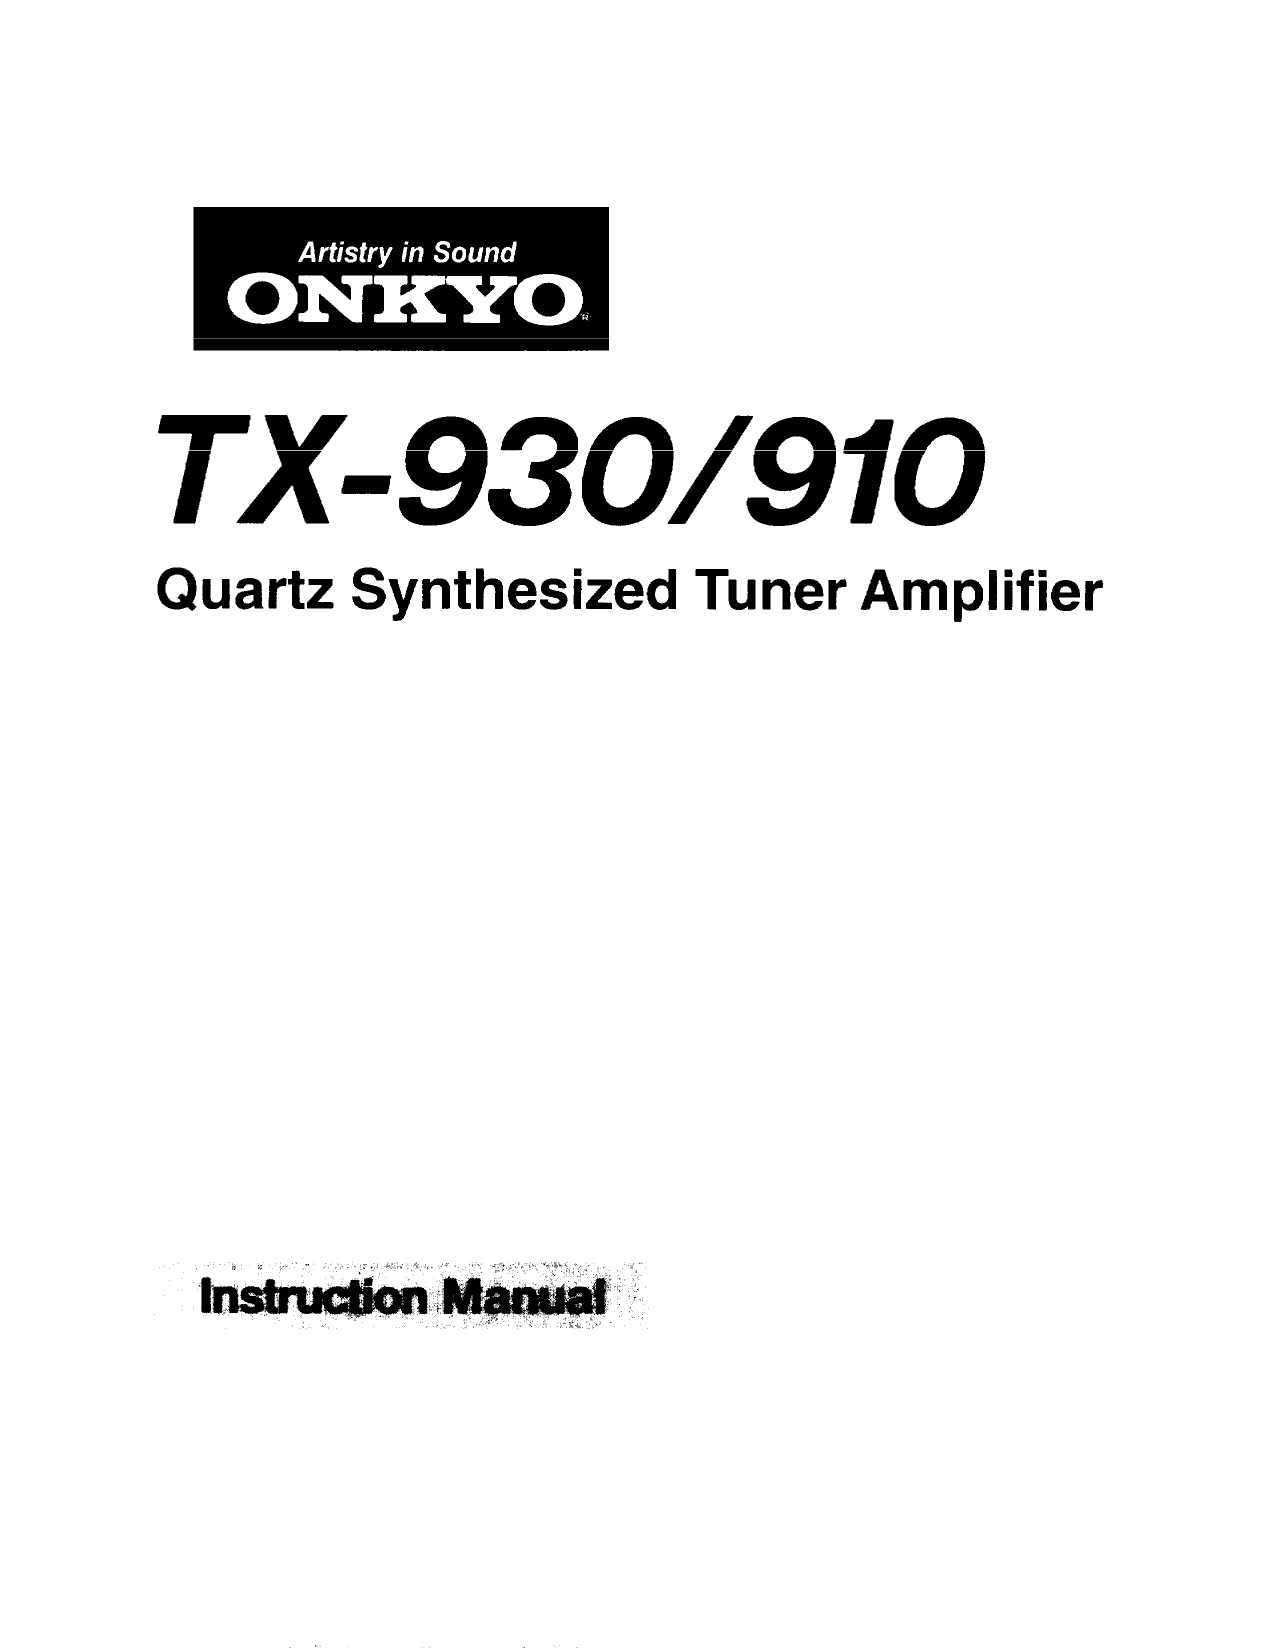 Download free pdf for Onkyo TX-930 Receiver manual